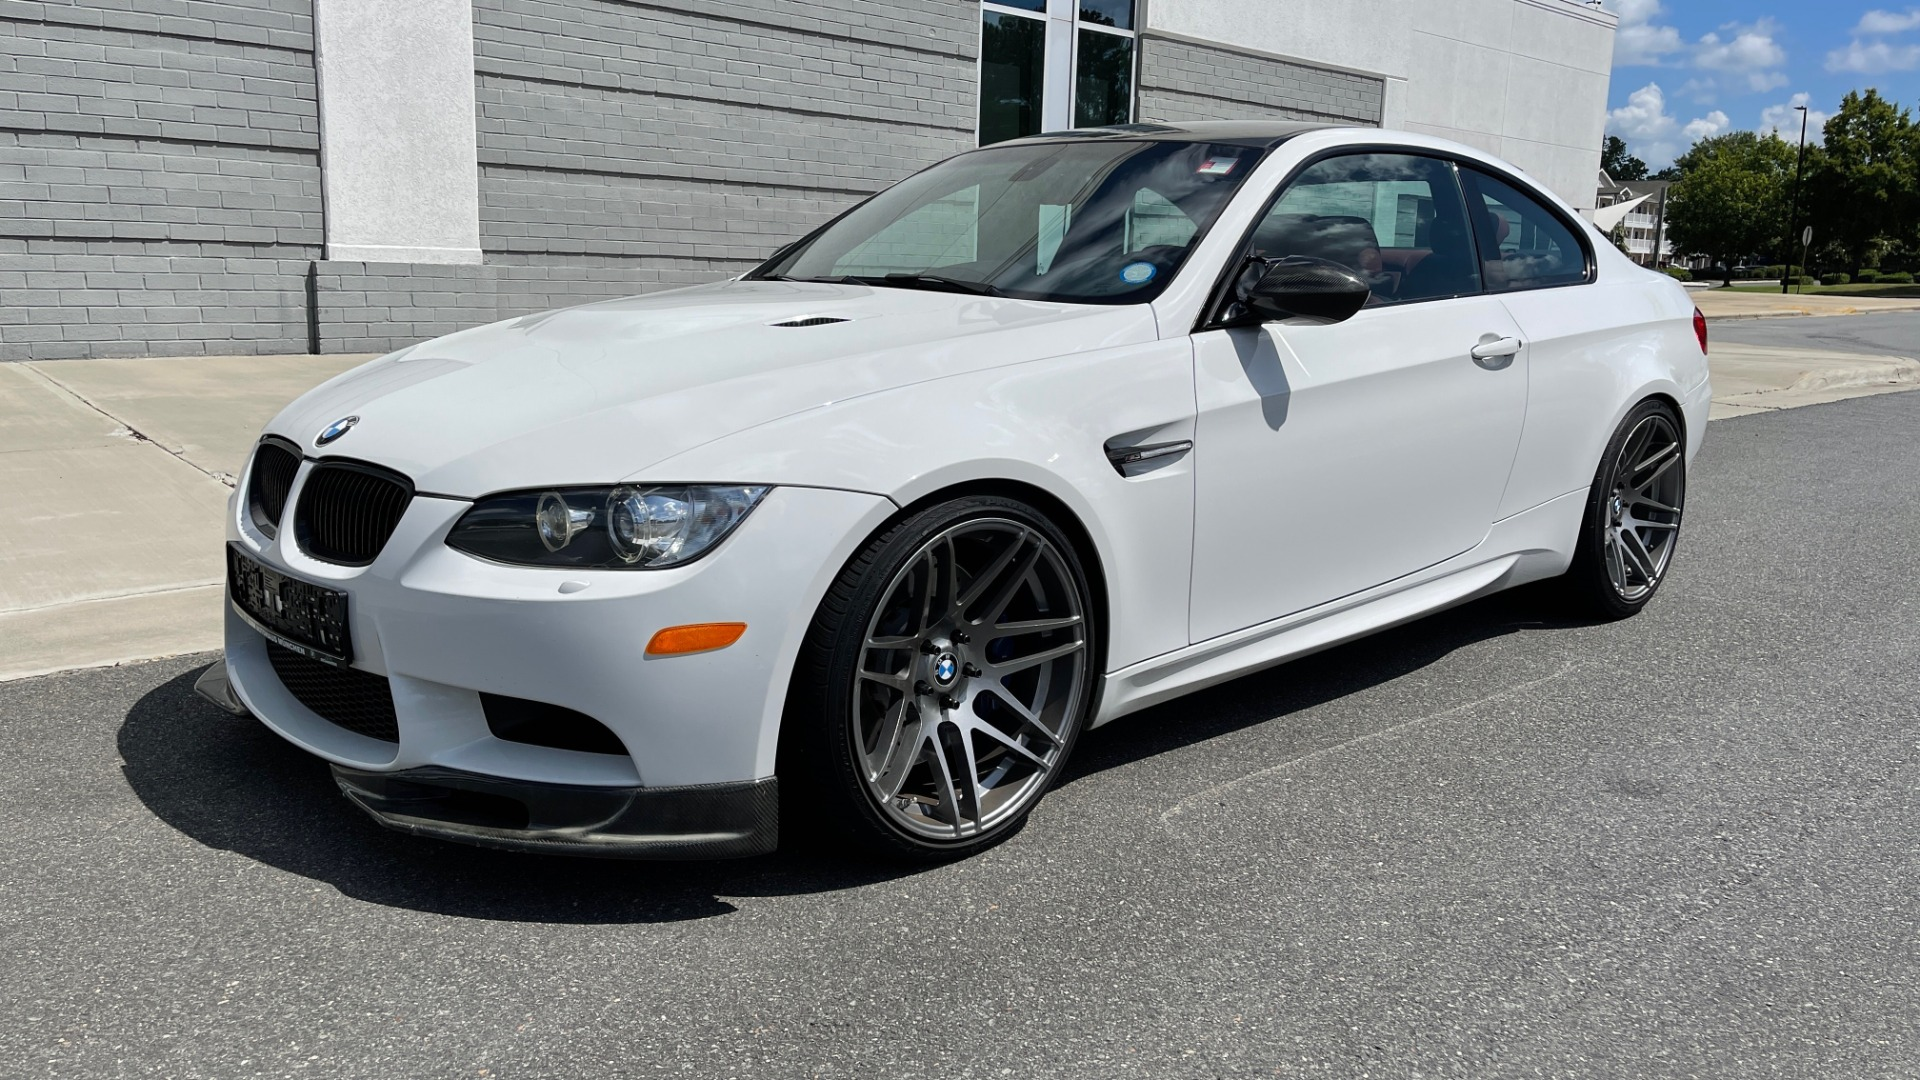 Used 2011 BMW M3 PREMIUM COUPE / CLD WTHR / TECH / SMARTPHONEINT / PARK ASST for sale Sold at Formula Imports in Charlotte NC 28227 3